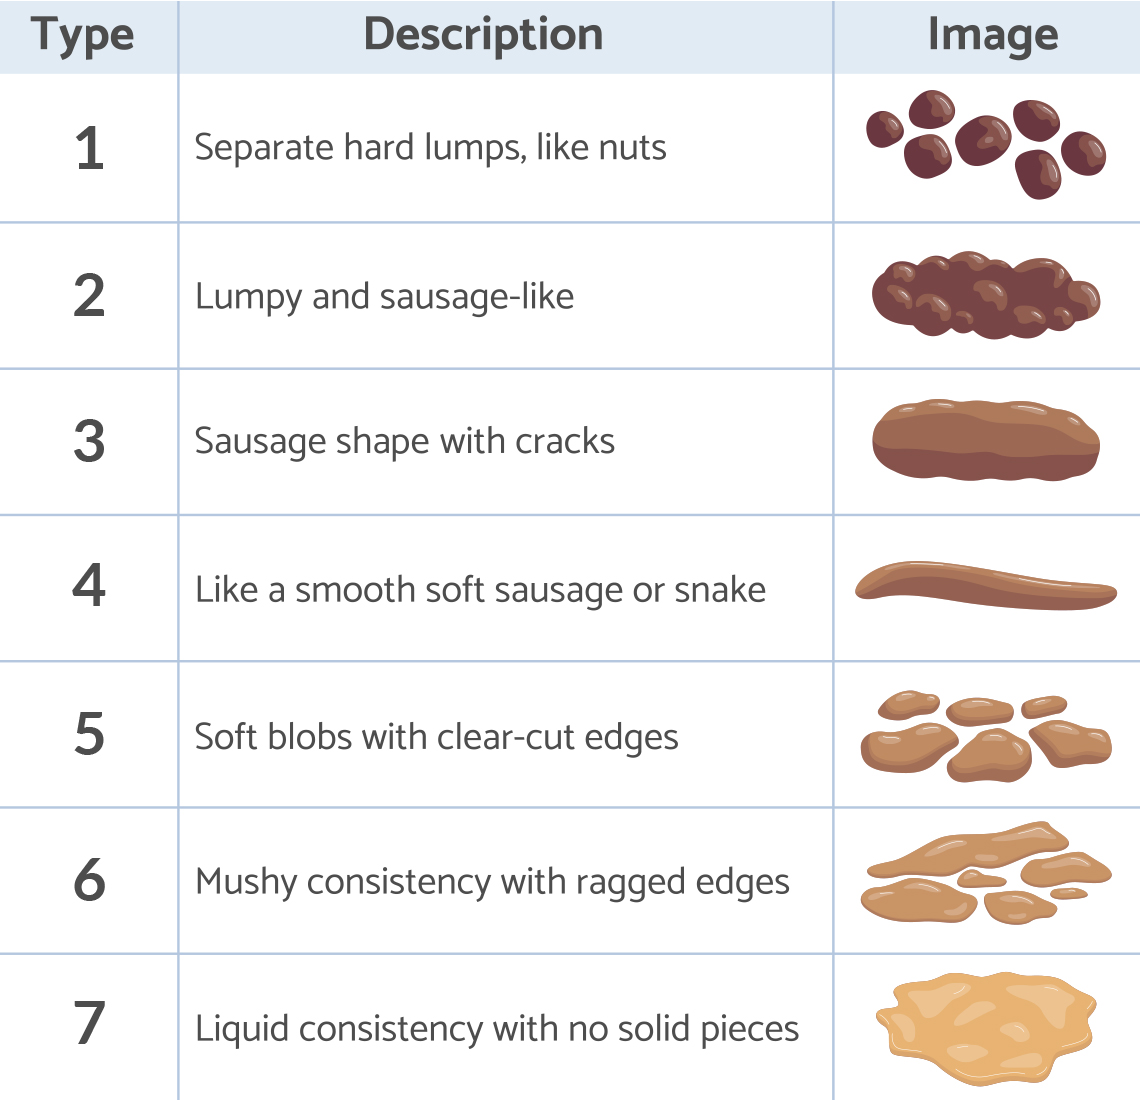 the bristol stool chart shows what the different types of poop look like in shape and color